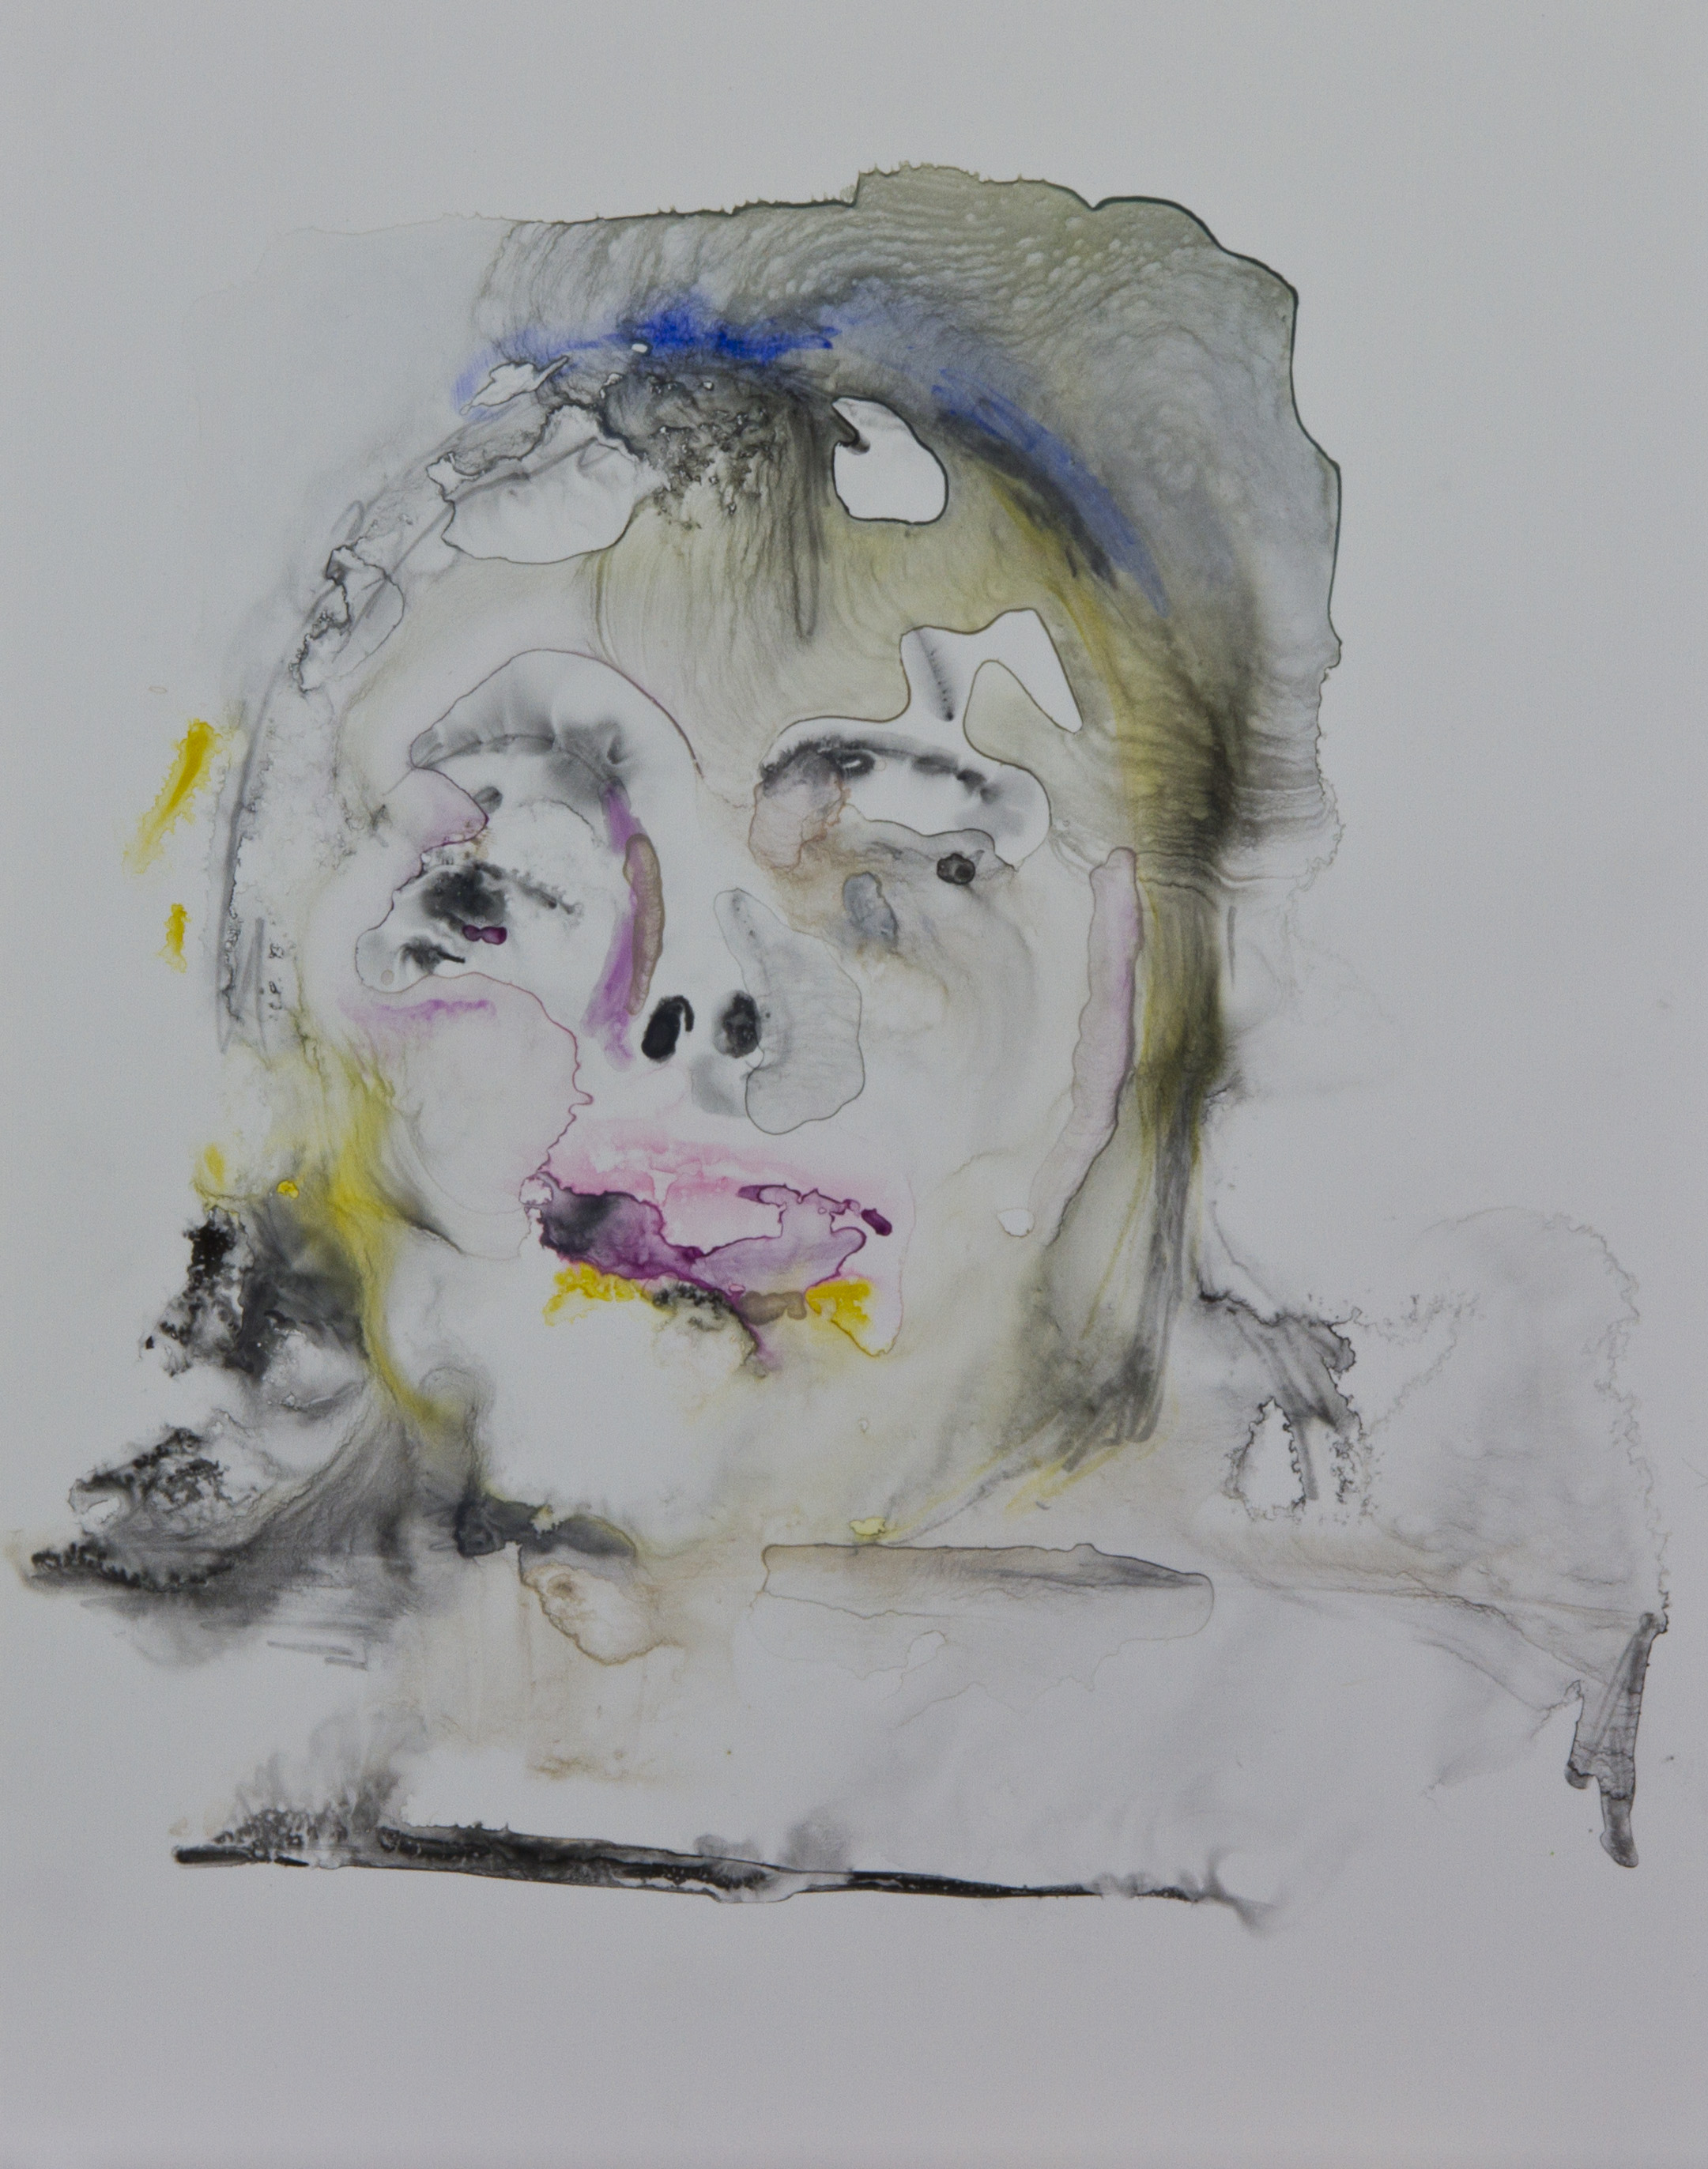 Specimen 4, 2011, watercolor on polypropylene, 11x14 inches